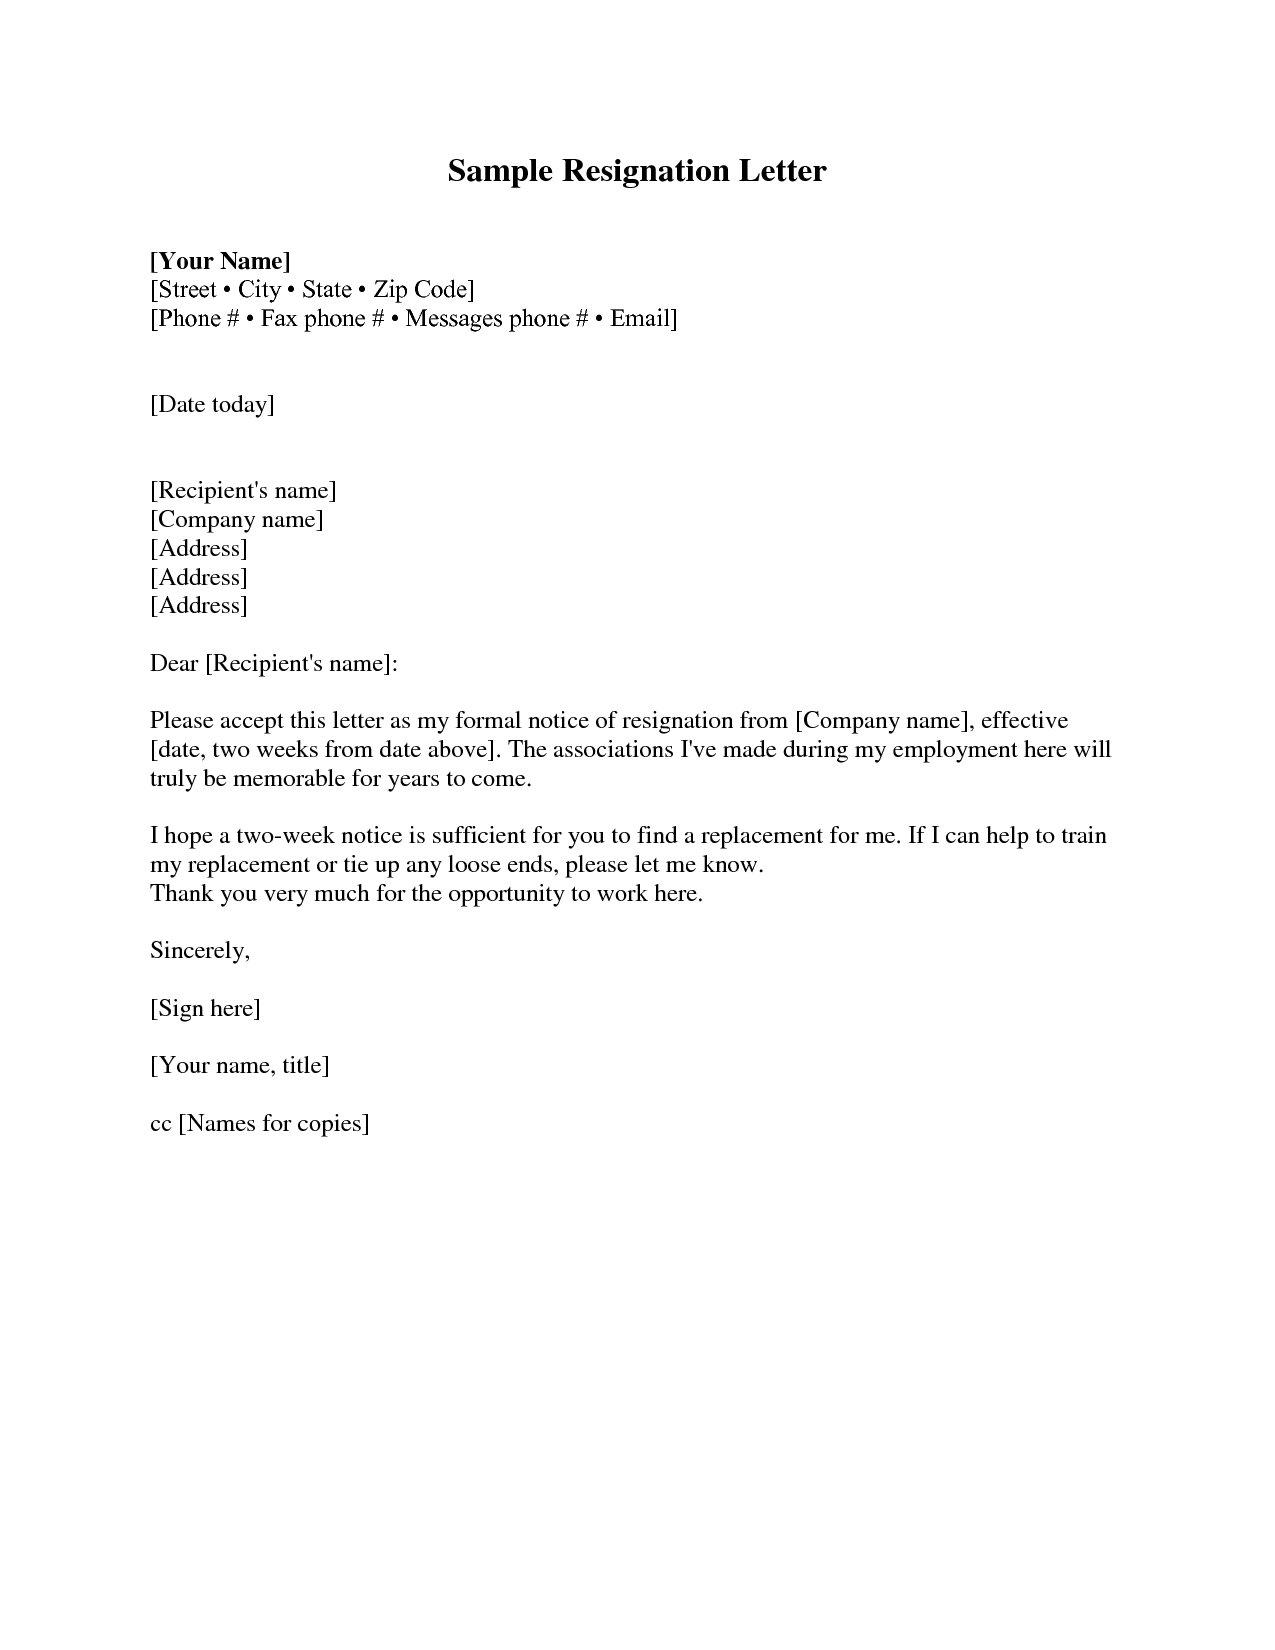 Pin By Template On Template Resignation Letter Formal Resignation